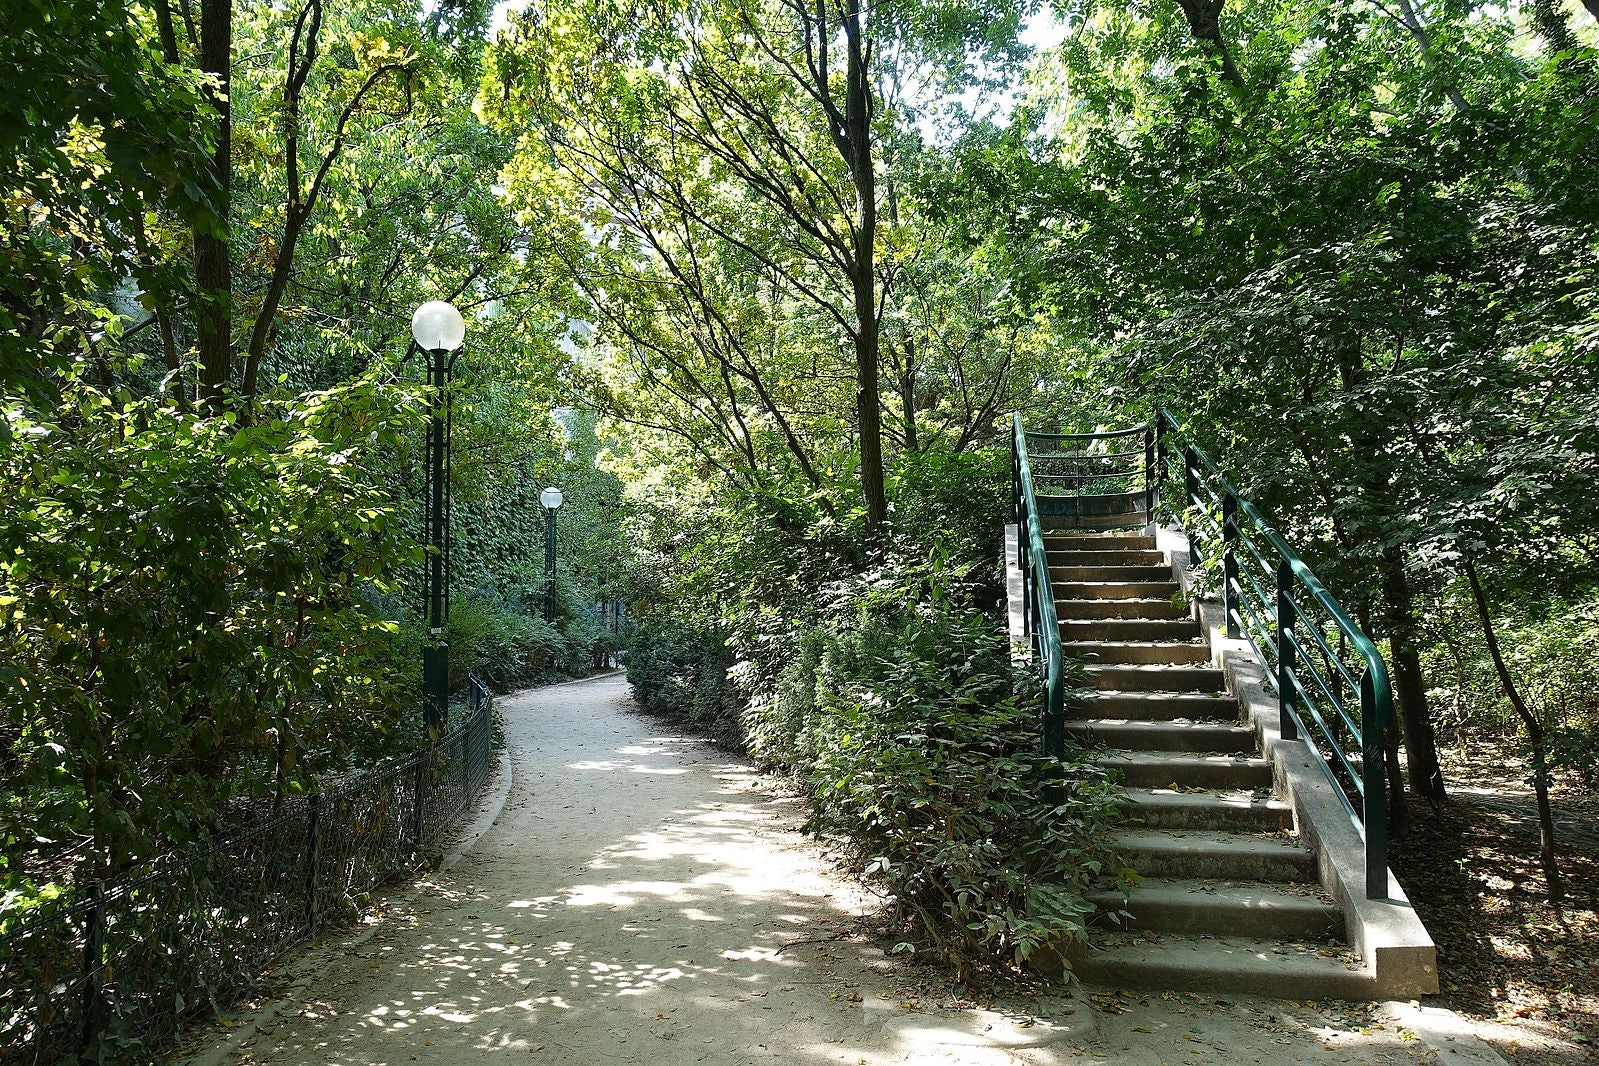 Paris - Coulée Verte promenade stairs and path between trees